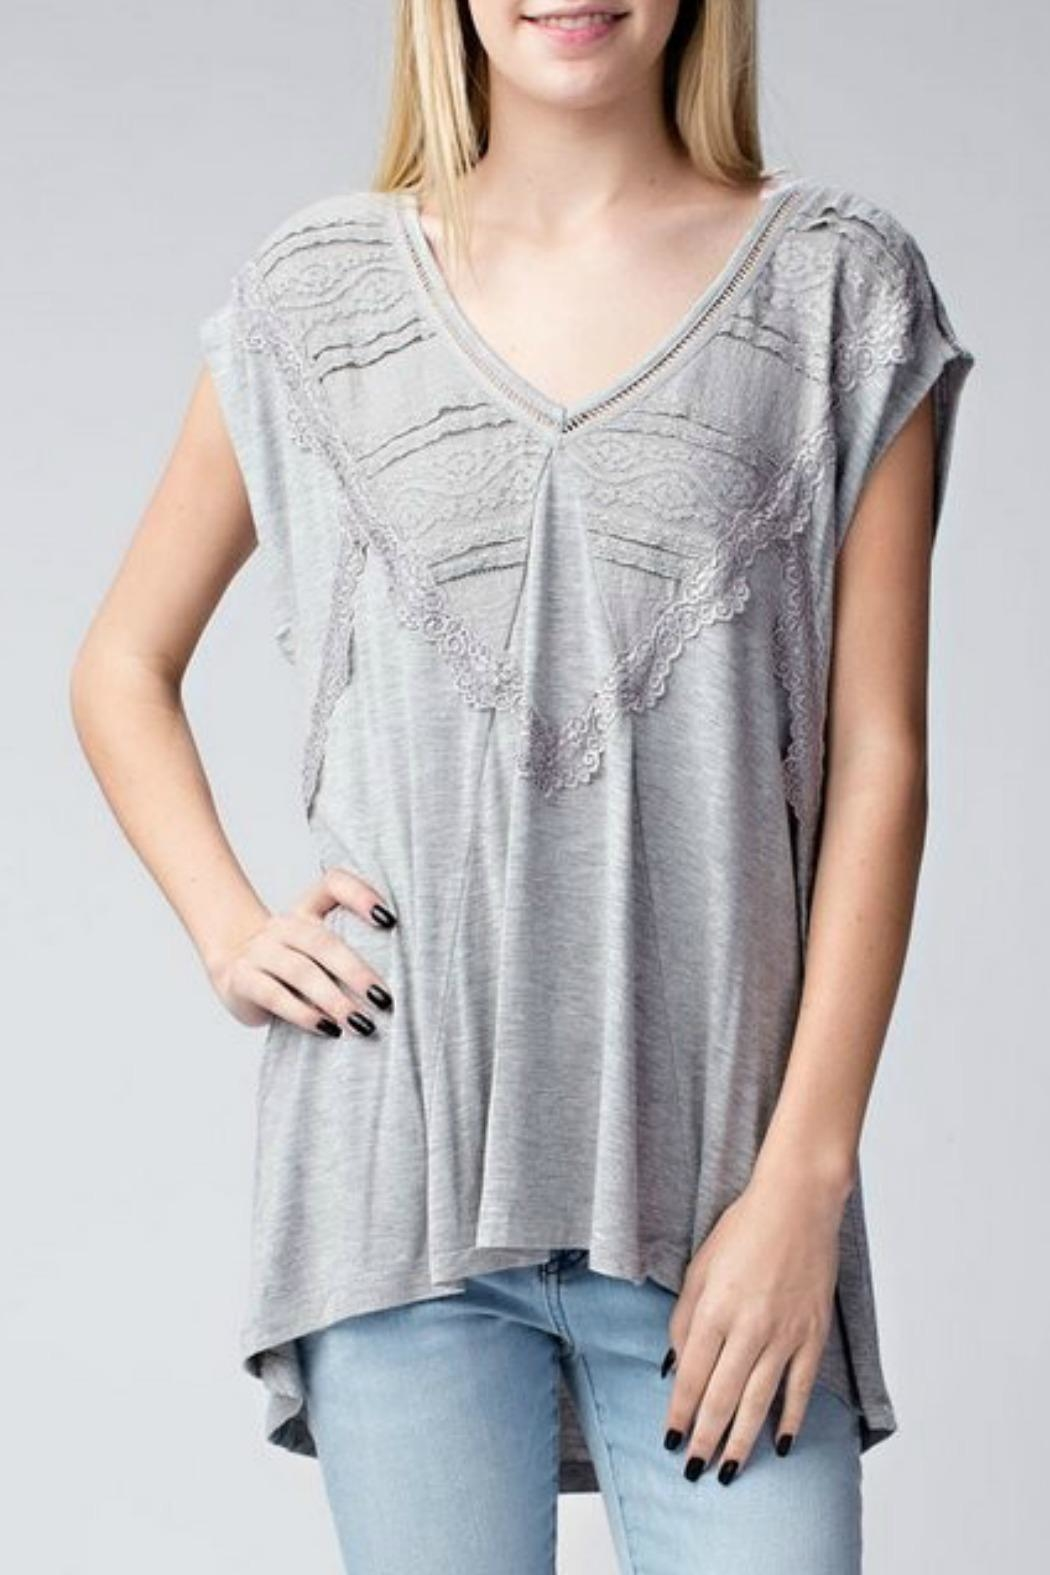 Jodifl Relaxed Lace-Trimmed Tunic - Main Image